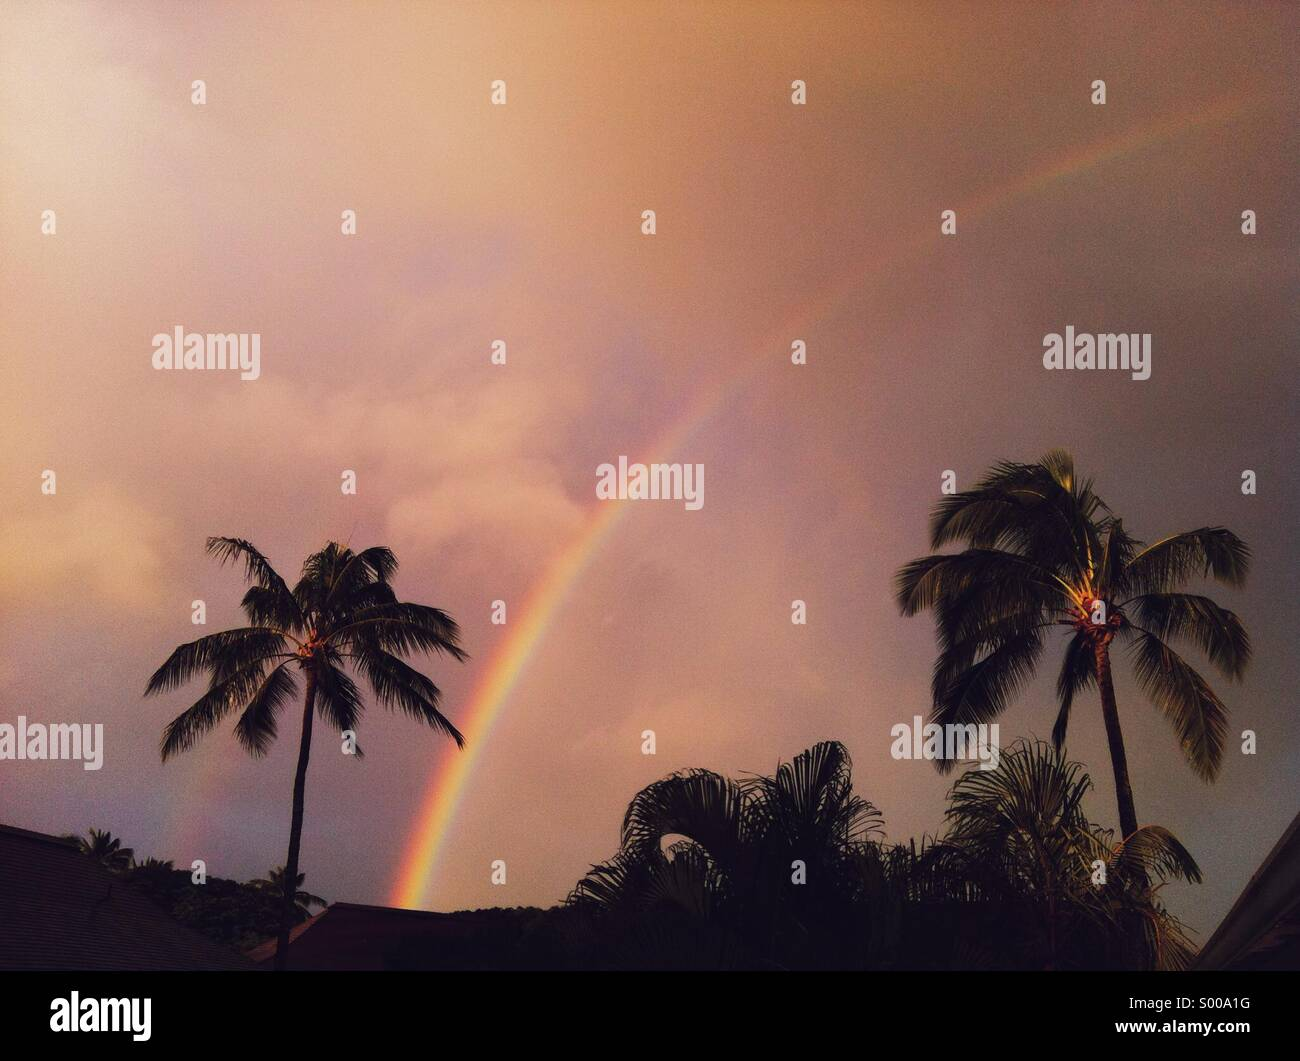 Rainbow after tropical storm Stock Photo